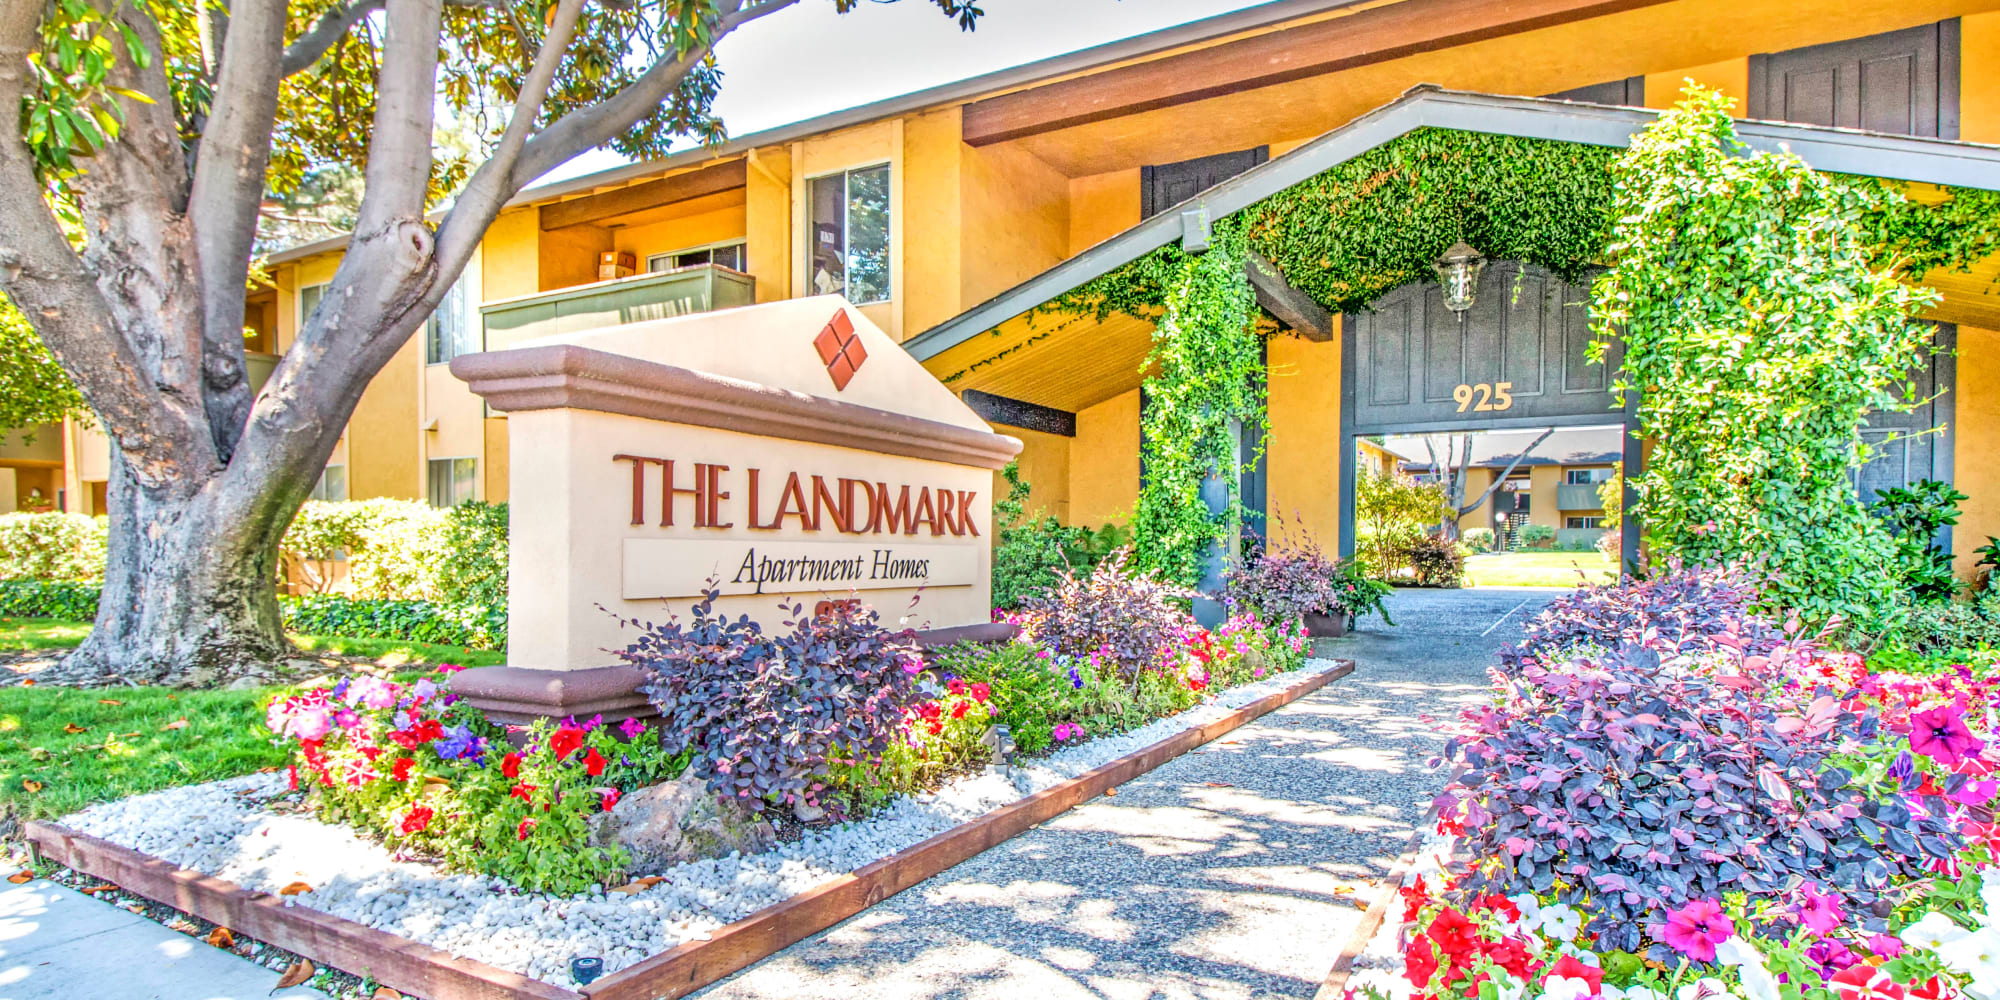 Apartments at The Landmark Apartment Homes in Sunnyvale, California